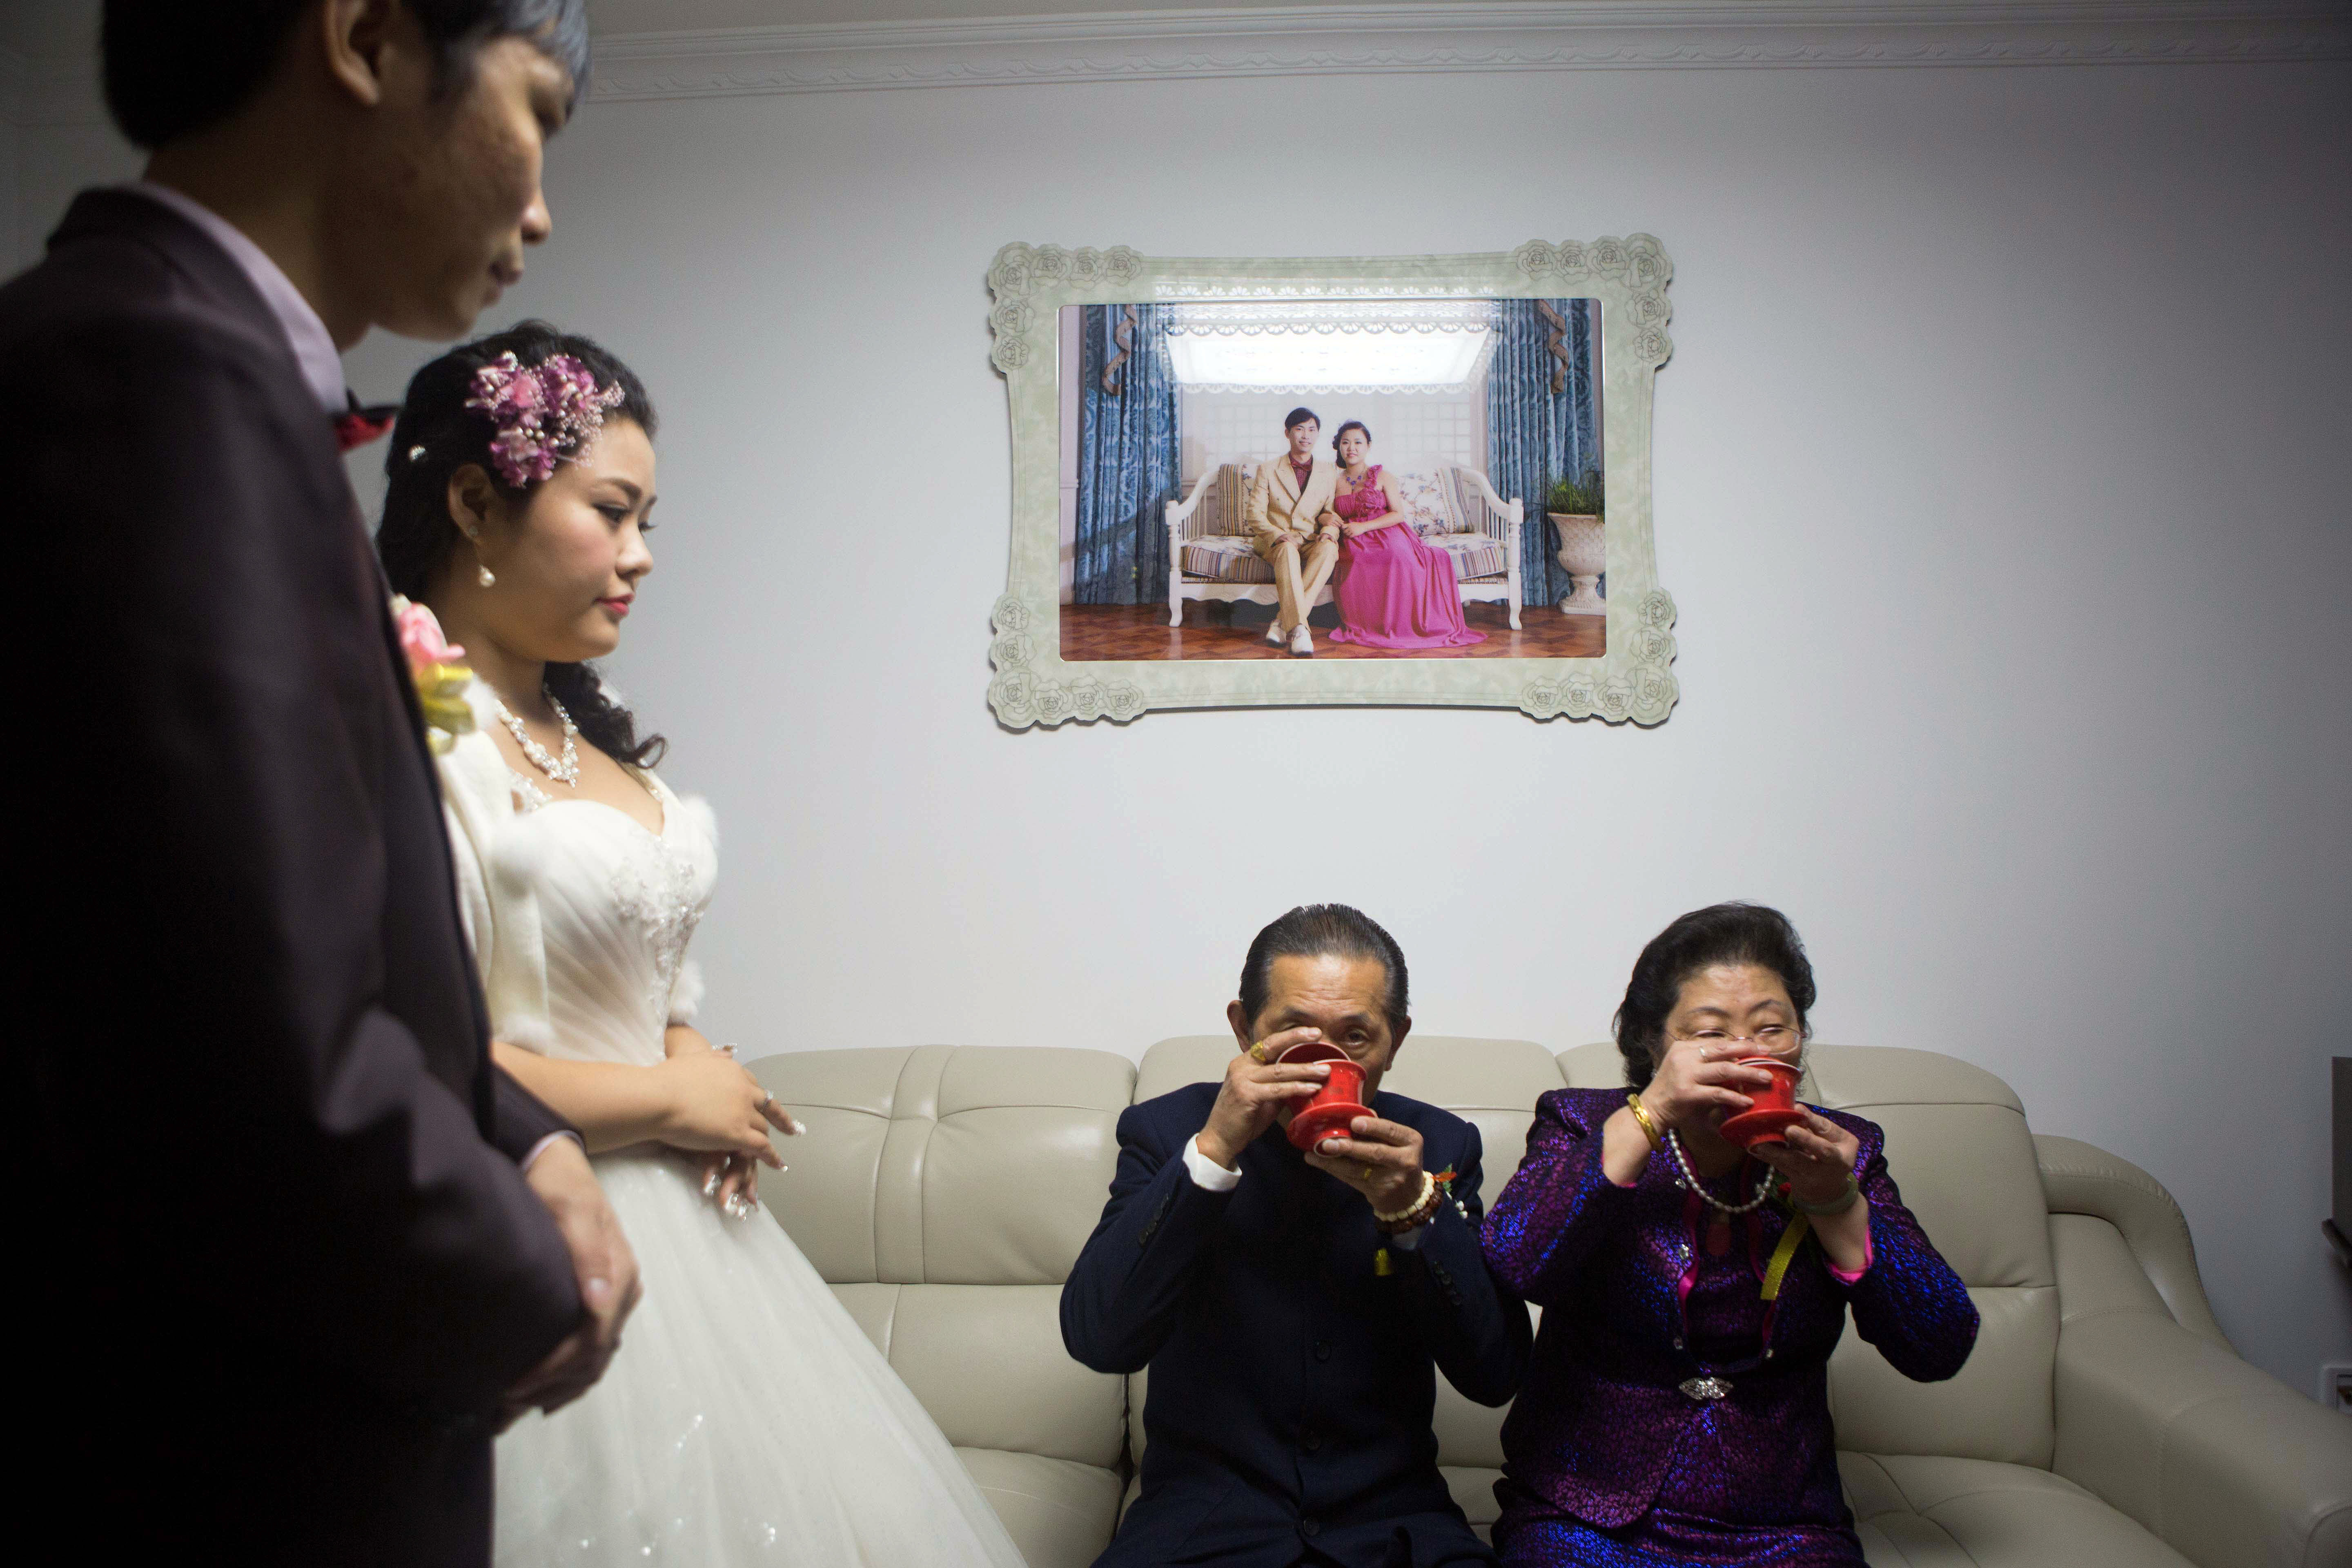 Xia Jiachen and Xu Chuyun, at left, honor the groom's grandparents during their wedding in December 2015. Pre-wedding photos are displayed on the wall.